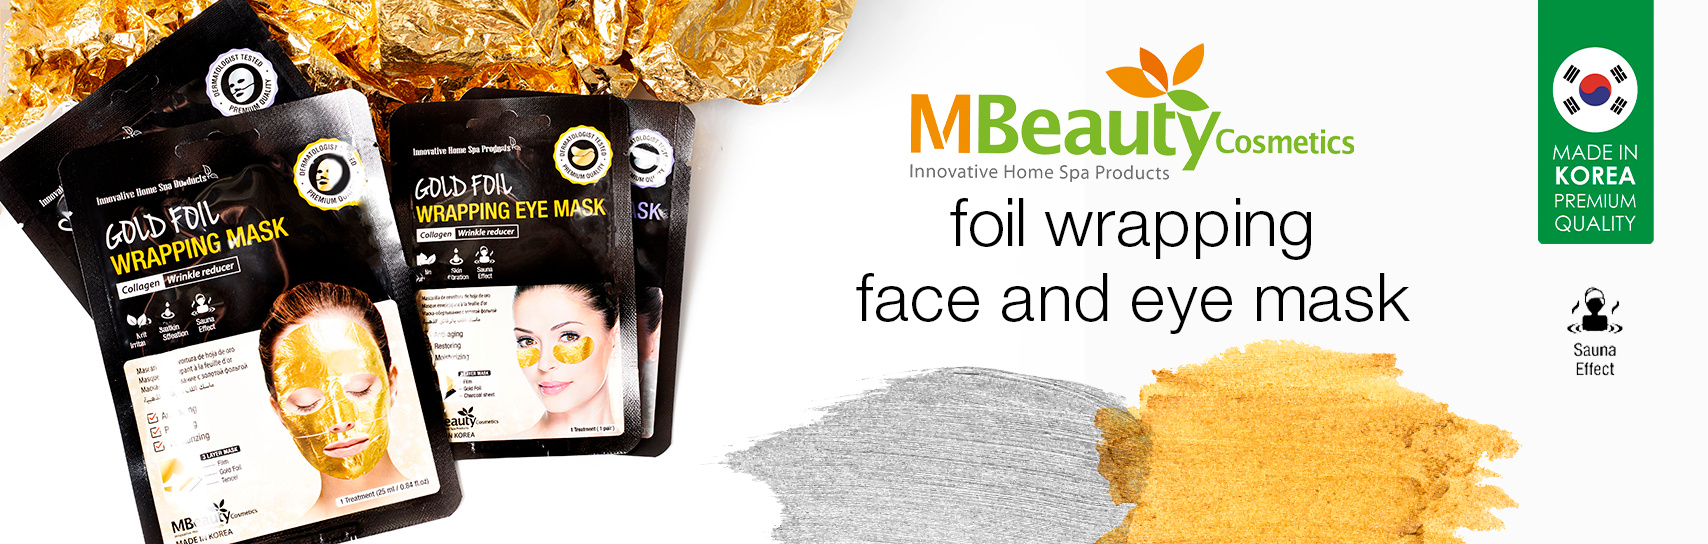 [MBeauty - foil wrapping face masks - products]